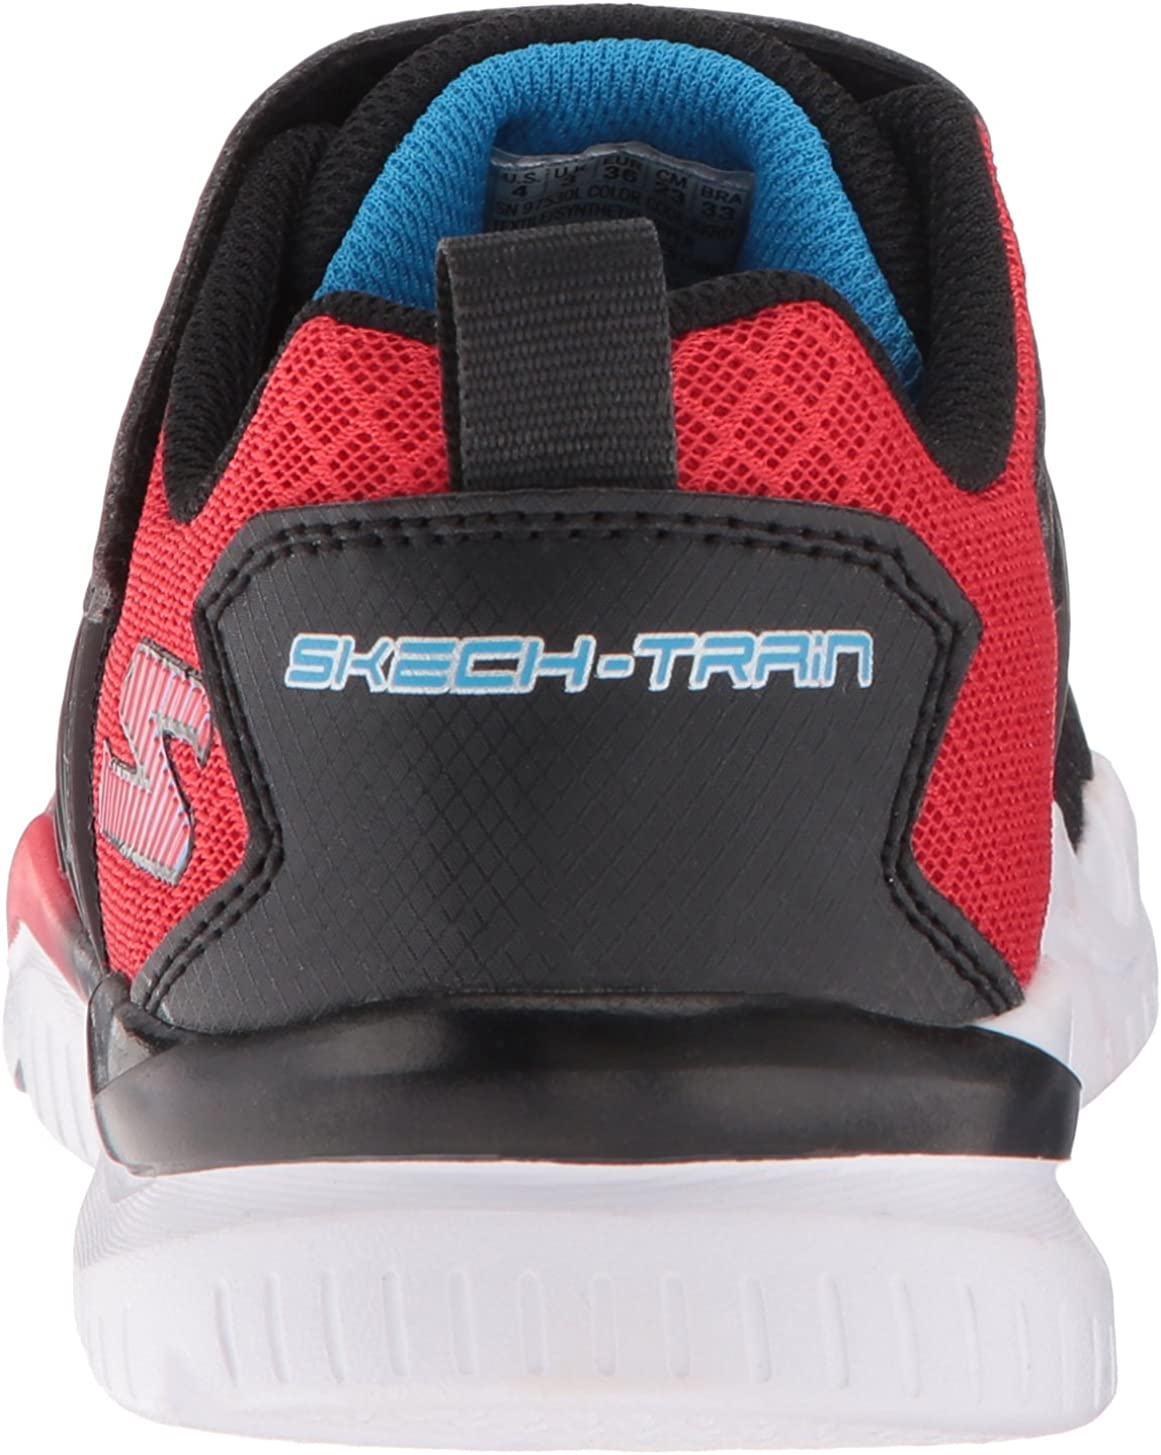 Skechers Kids Skech-Train Sneaker